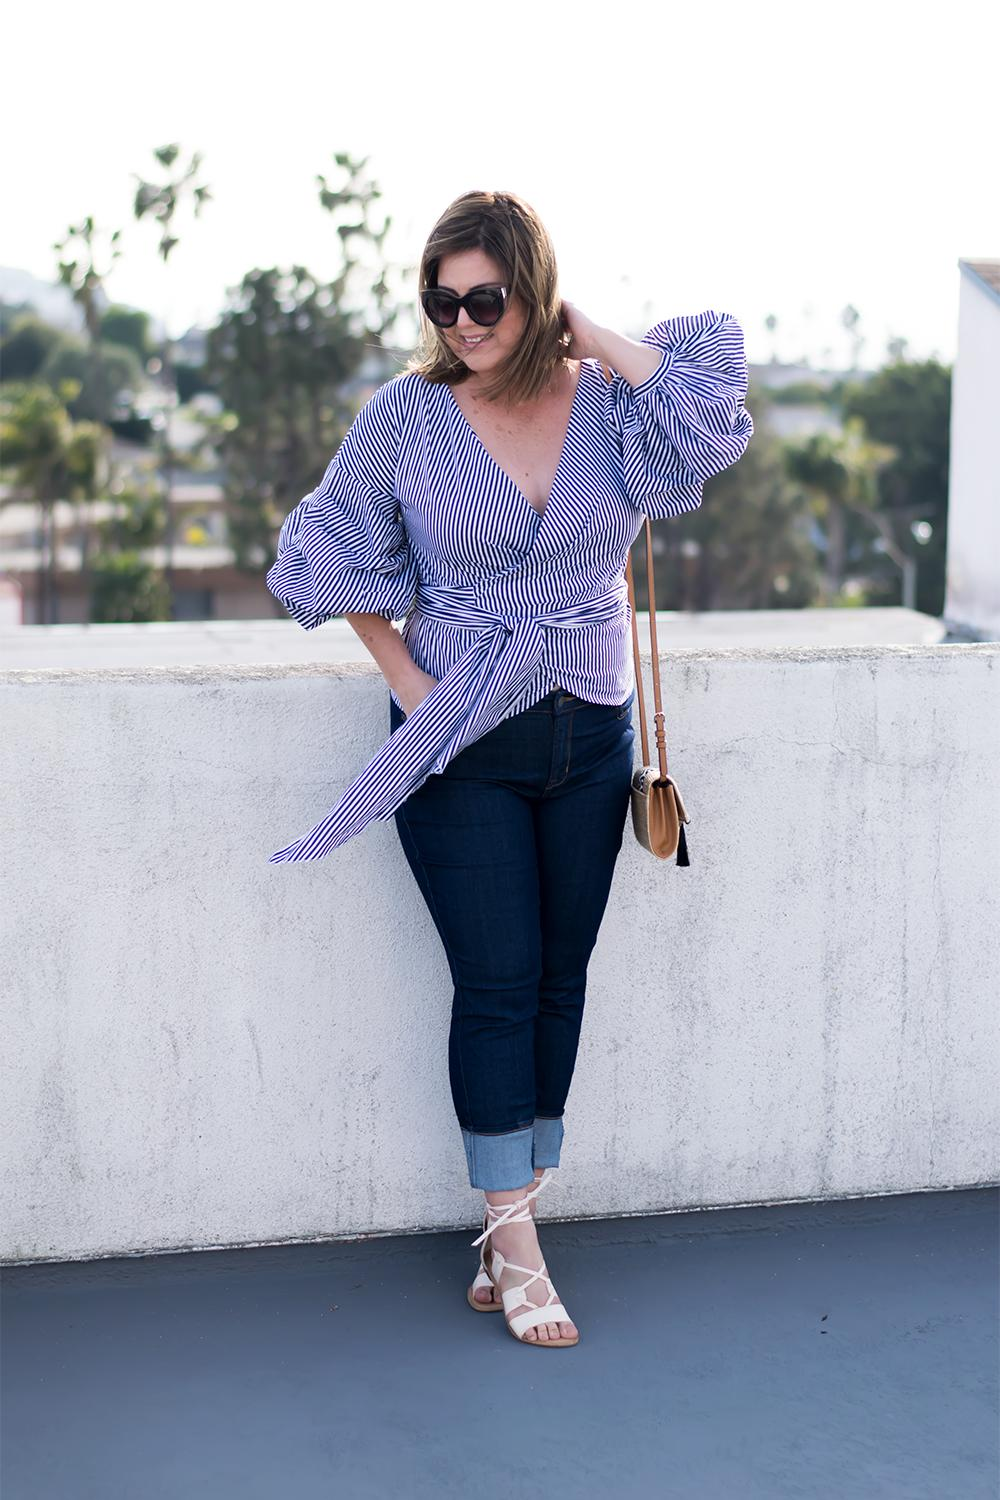 Striped-Wrap-Statement-Top-Outfit-Must-Have-Statement-Tops-for-Spring-Under-60-Chicwish-Barefoot-in-LA-Fashion-Blog-Style-Ideas-DSC_0806